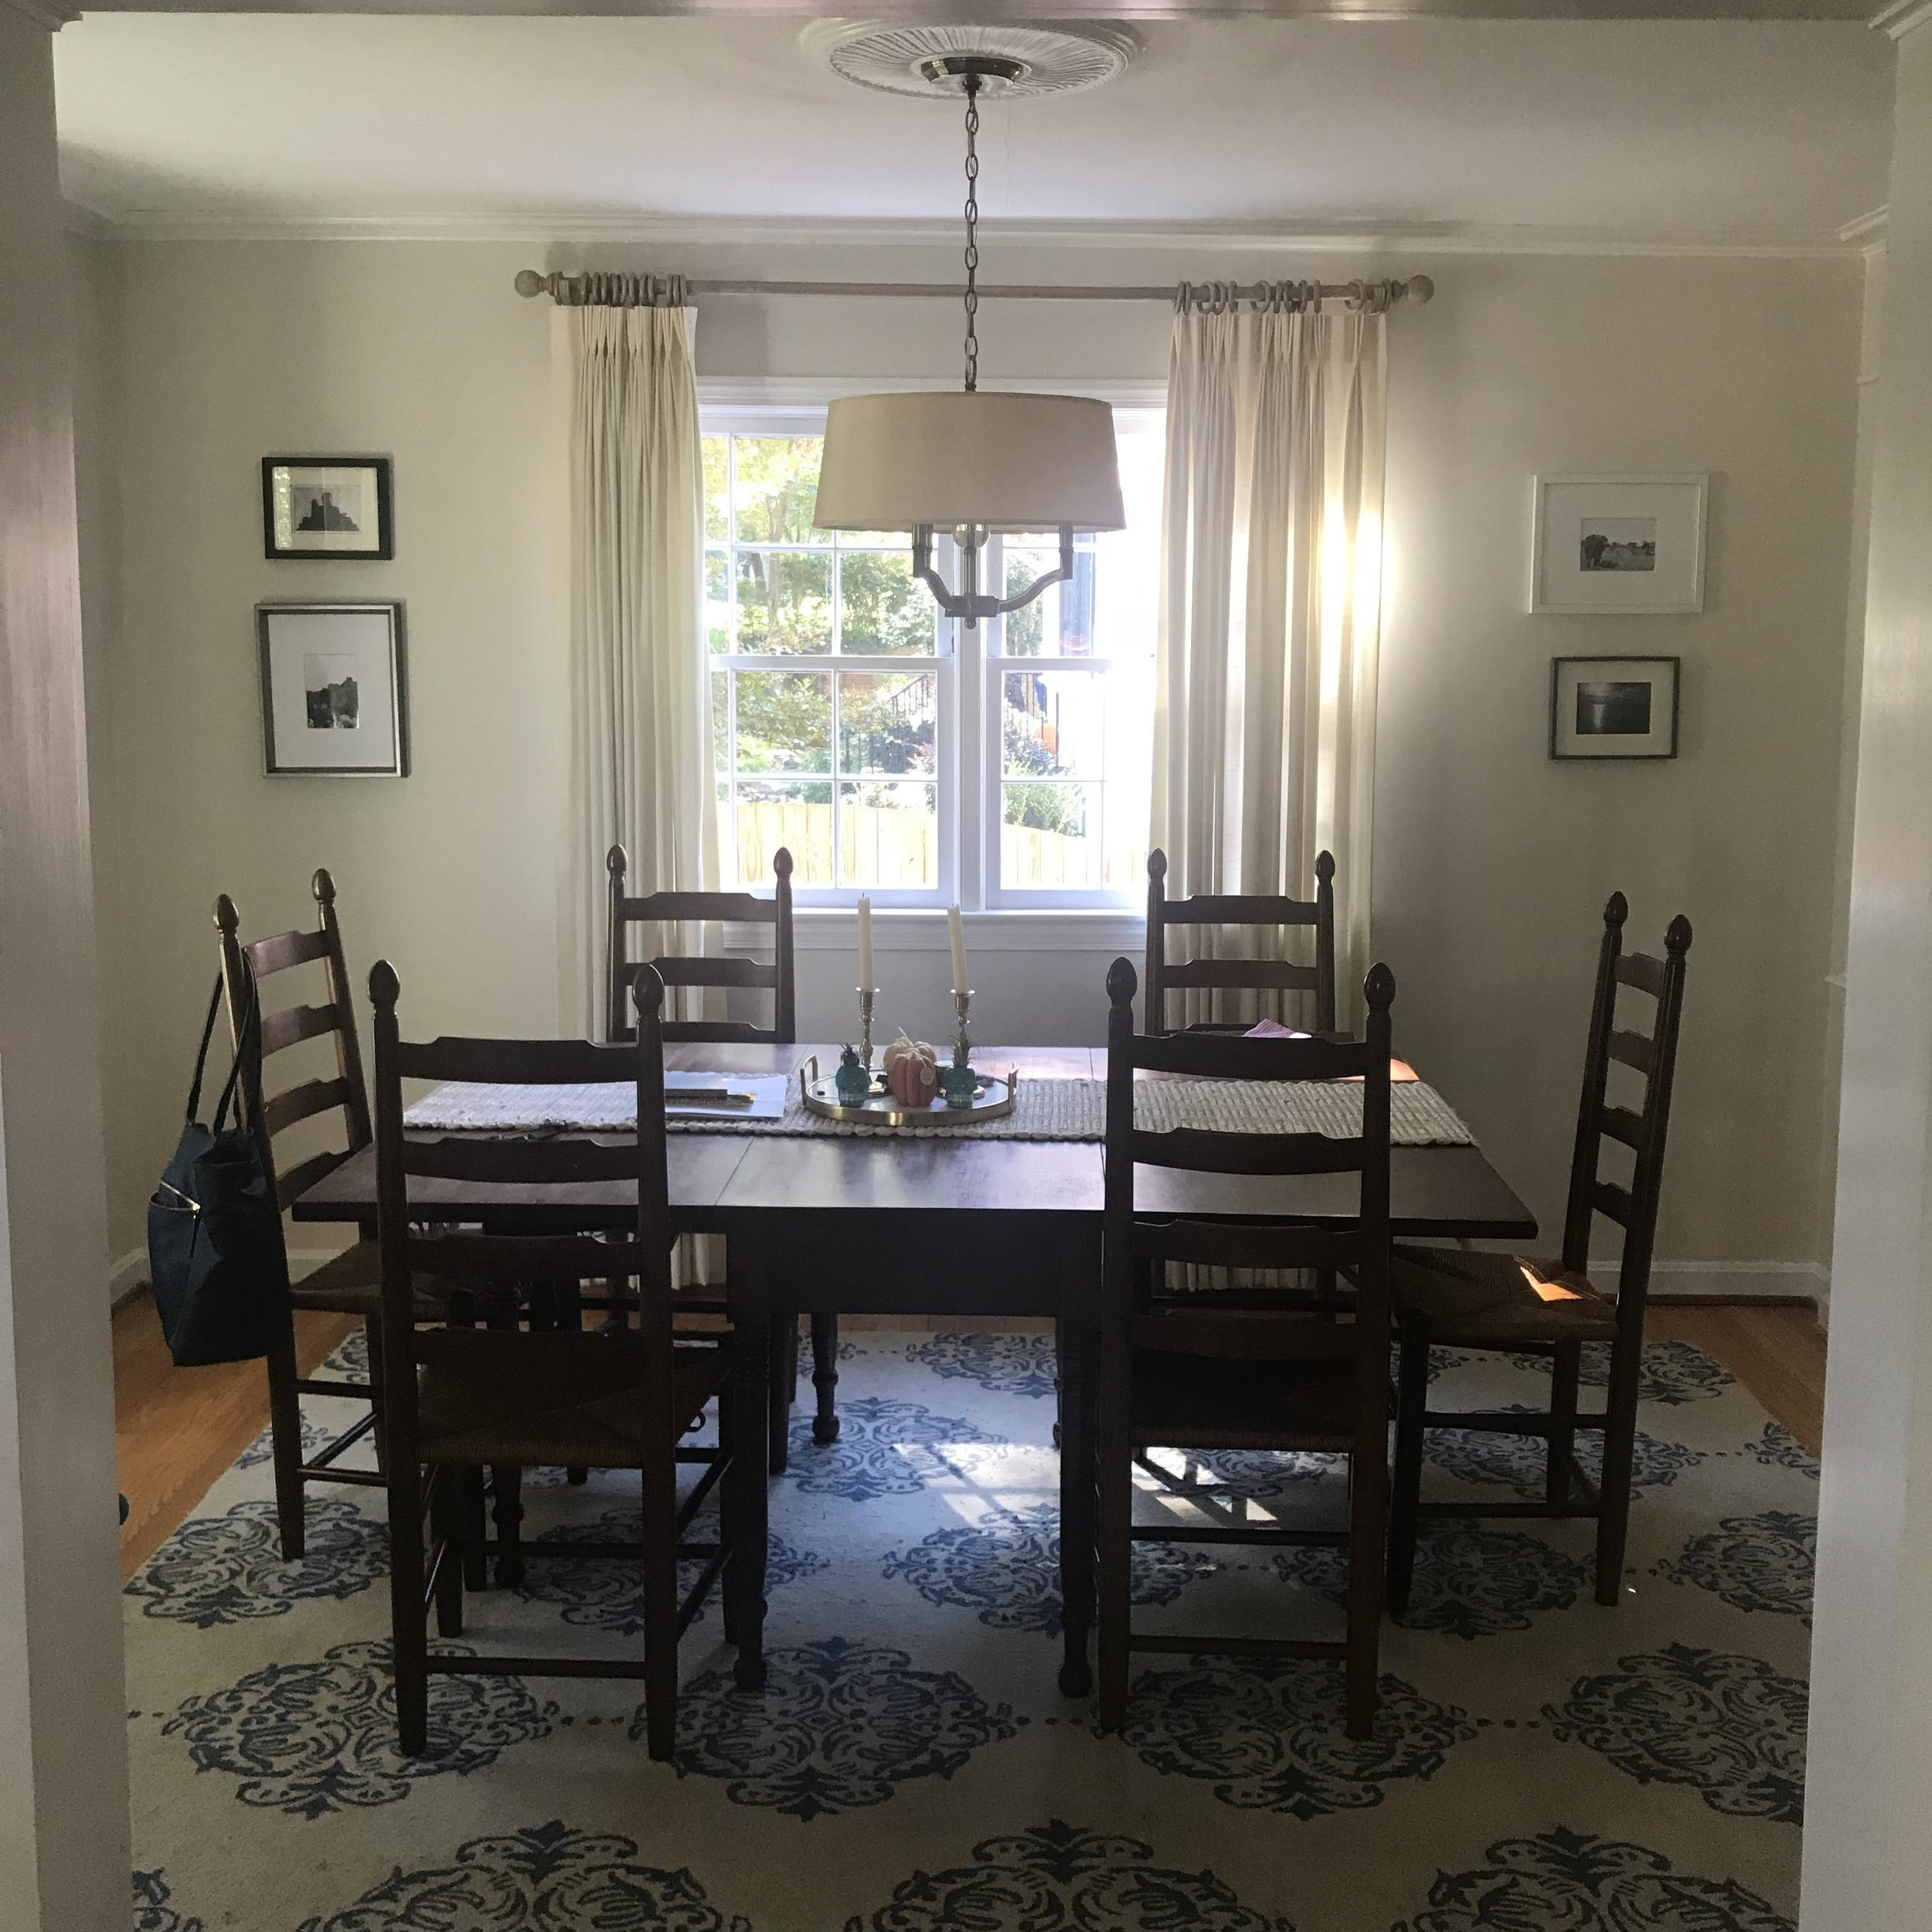 CURRENT DINING ROOM